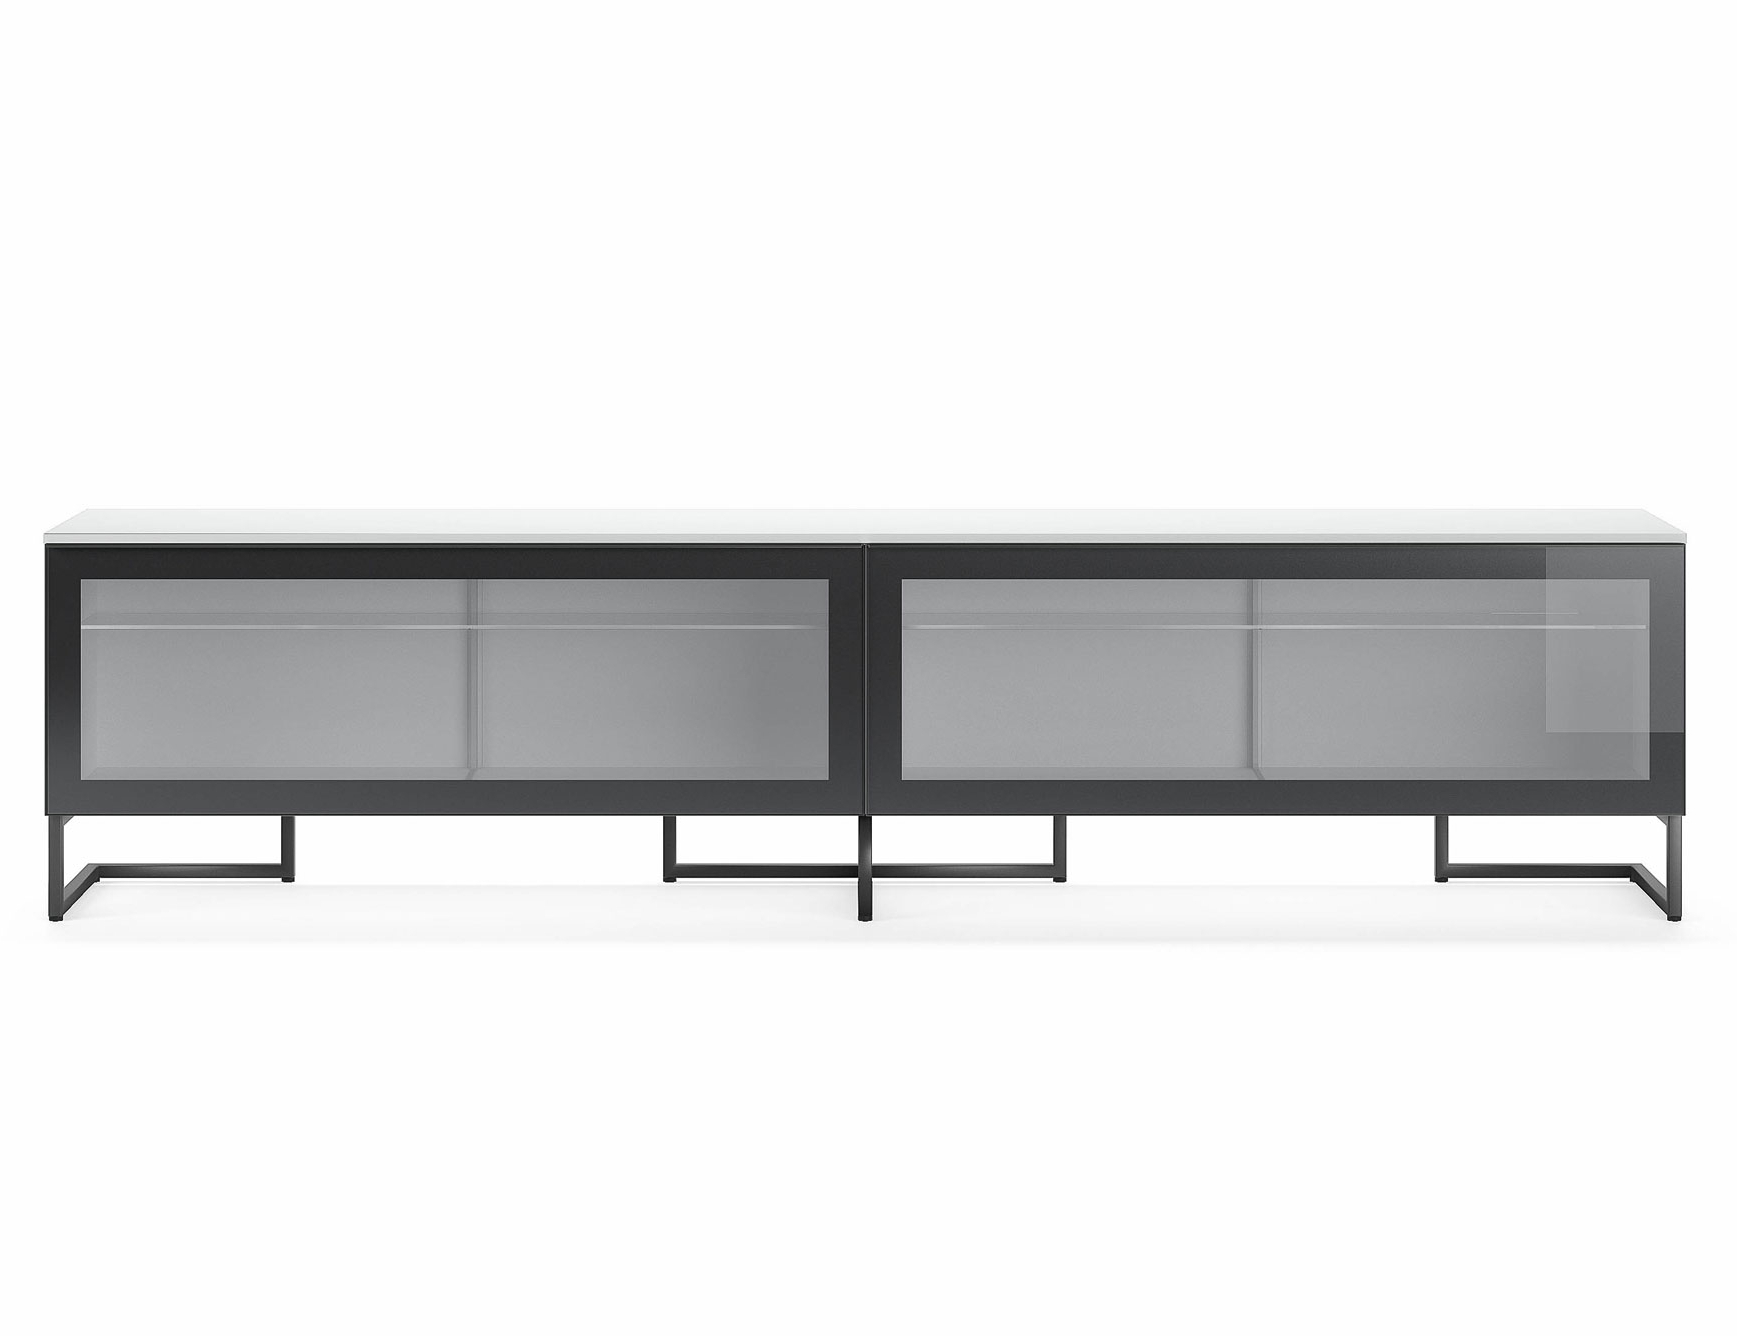 Nella Vetrina Pianca Spazio Sgm240 Contemporary Italian Tv Unit In Throughout Well Known Black Burnt Oak Sideboards (Gallery 3 of 20)